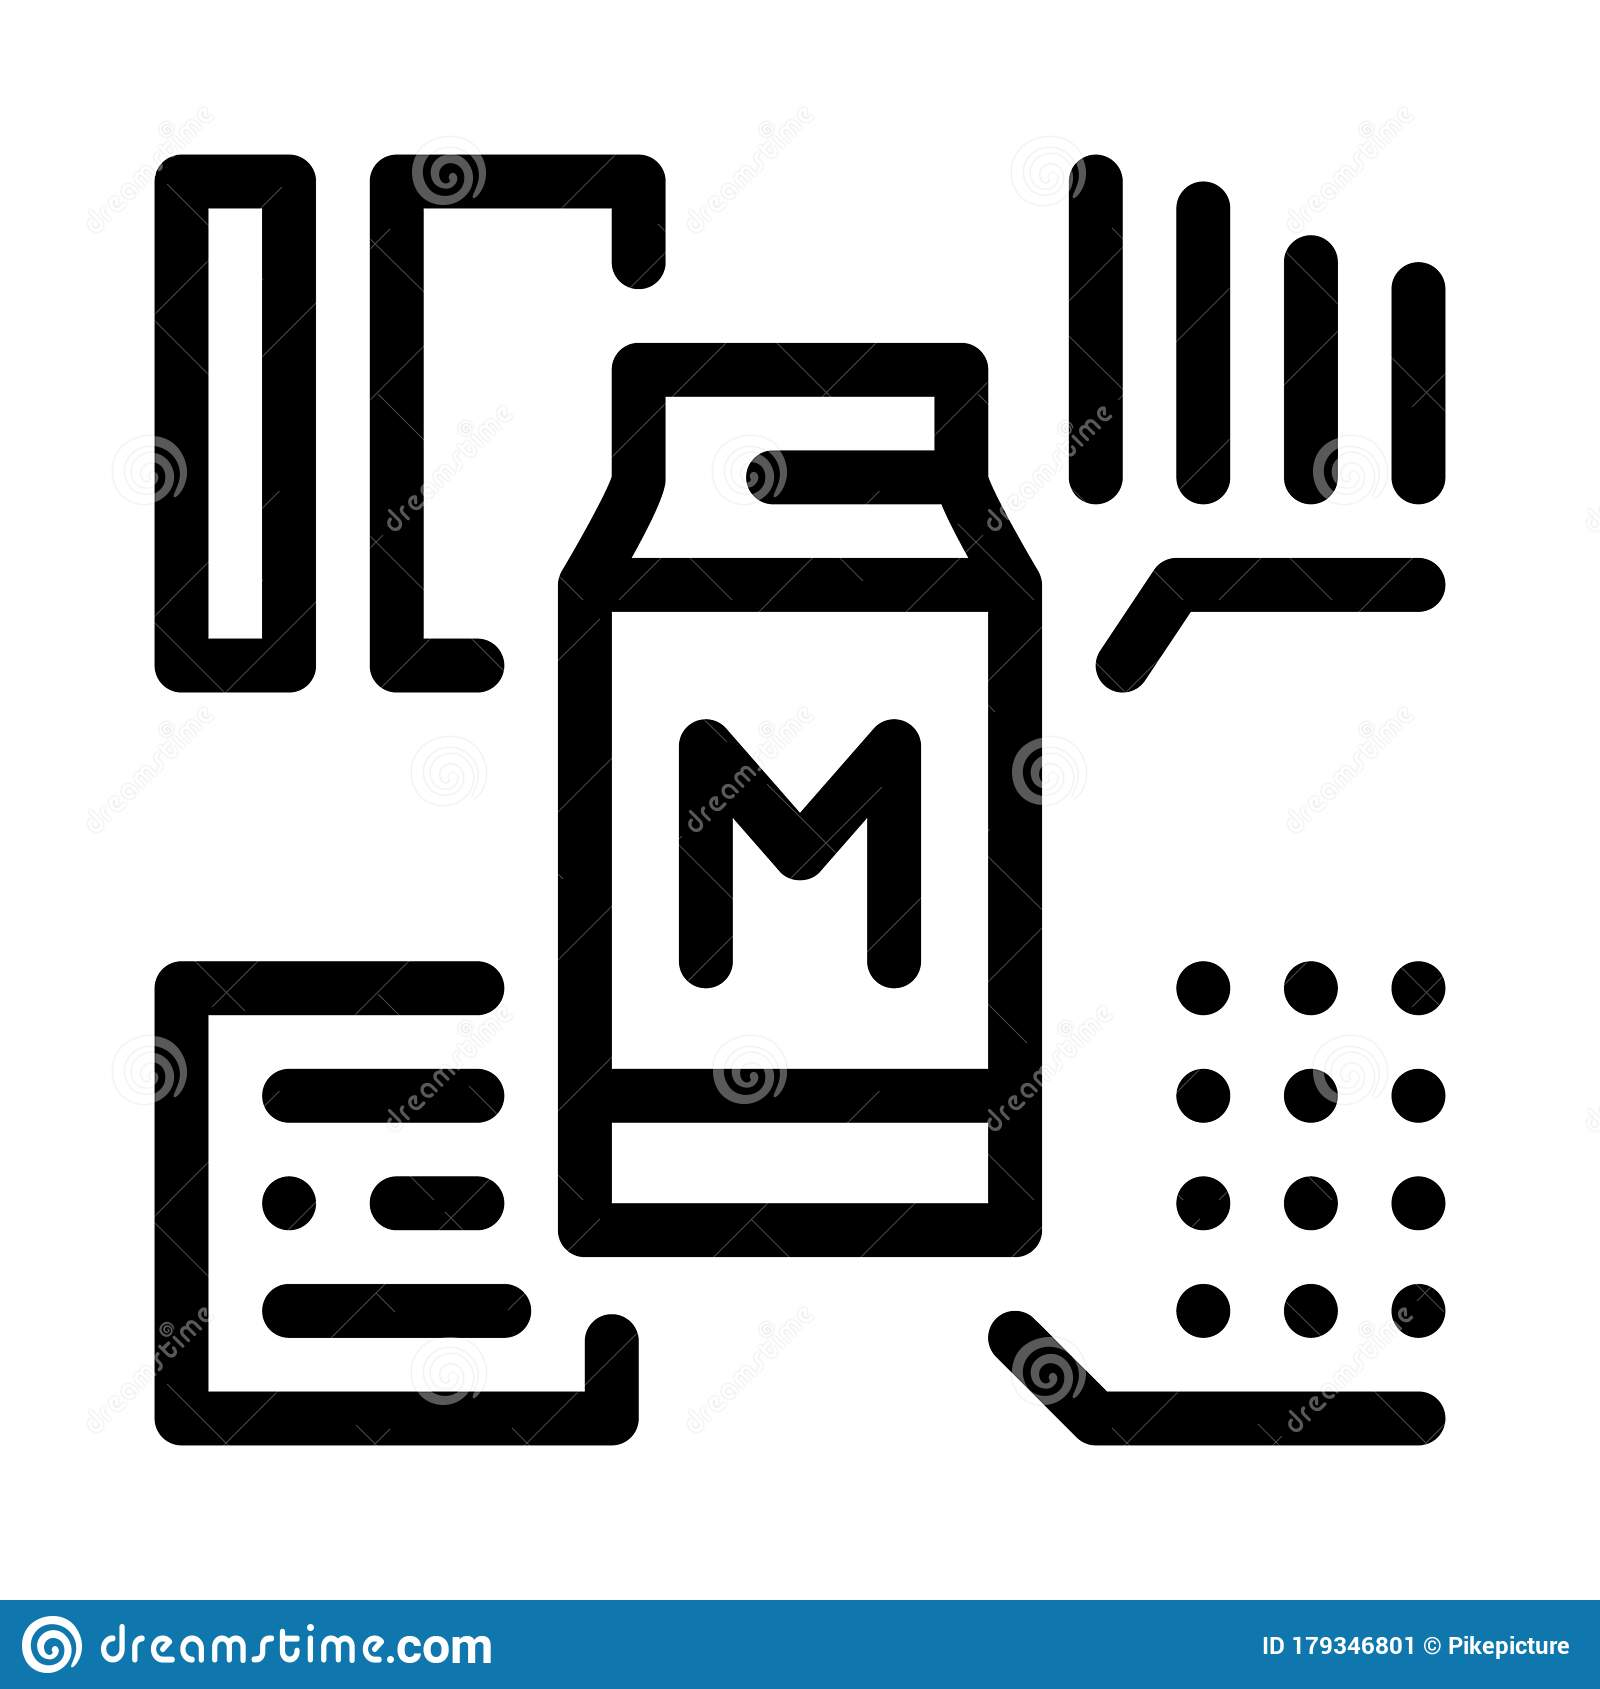 milk structure icon vector outline illustration stock vector illustration of industry factory 179346801 milk structure icon vector outline illustration stock vector illustration of industry factory 179346801